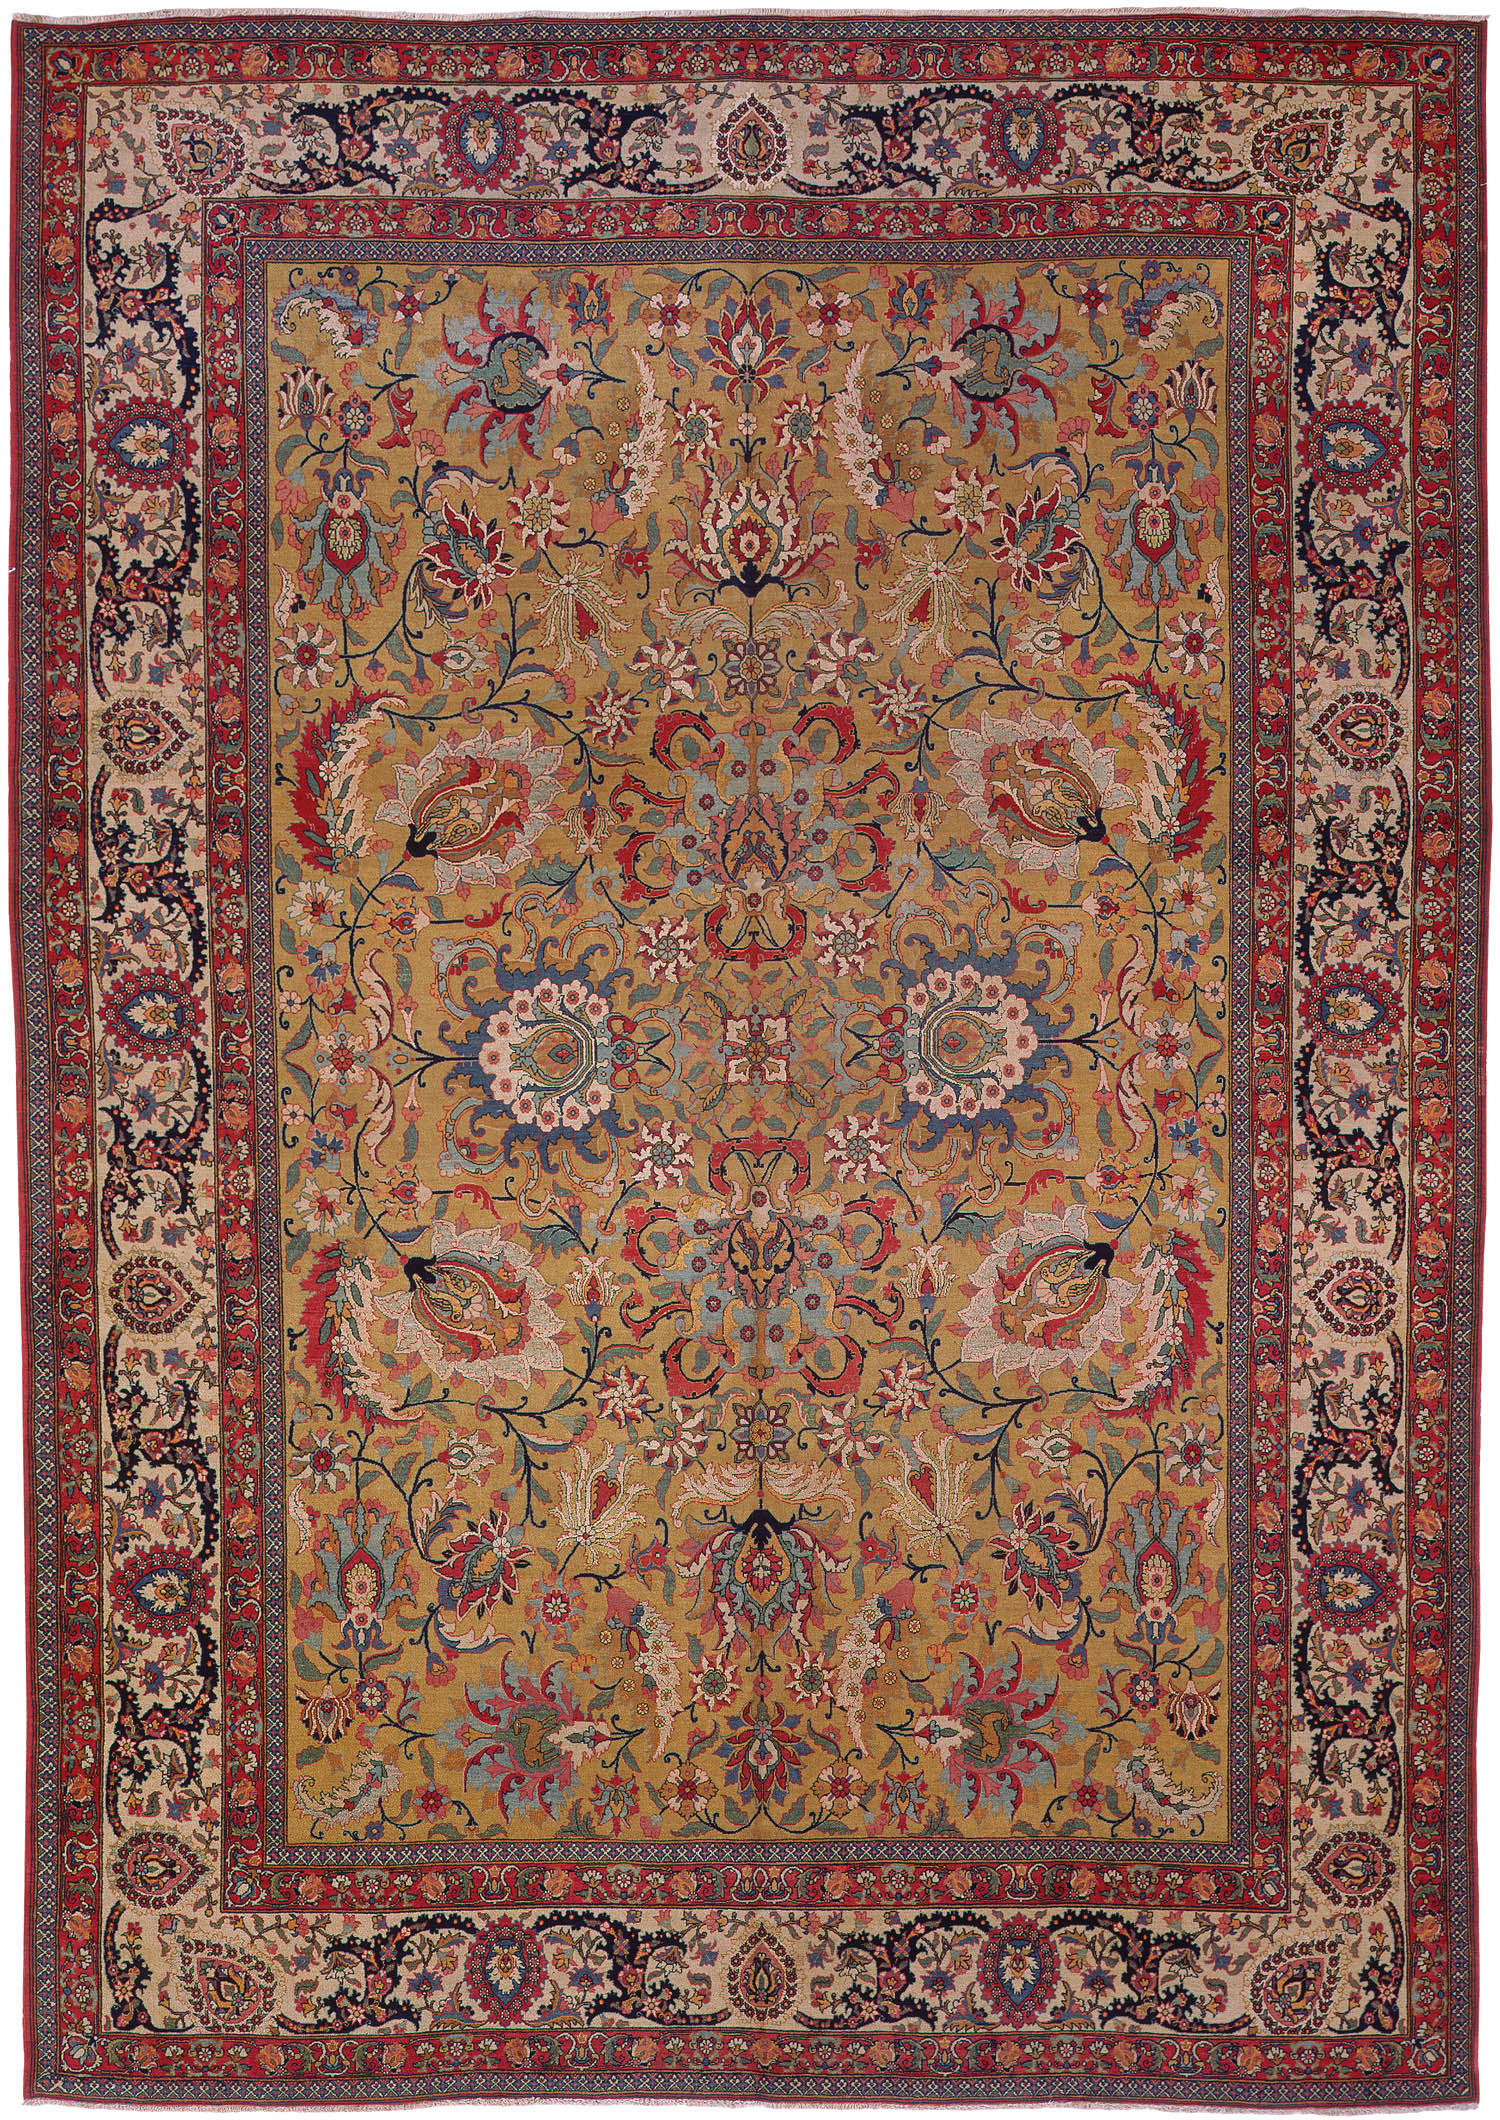 Antique Silk And Wool Tehran Persian Rugs 3214 For Sale